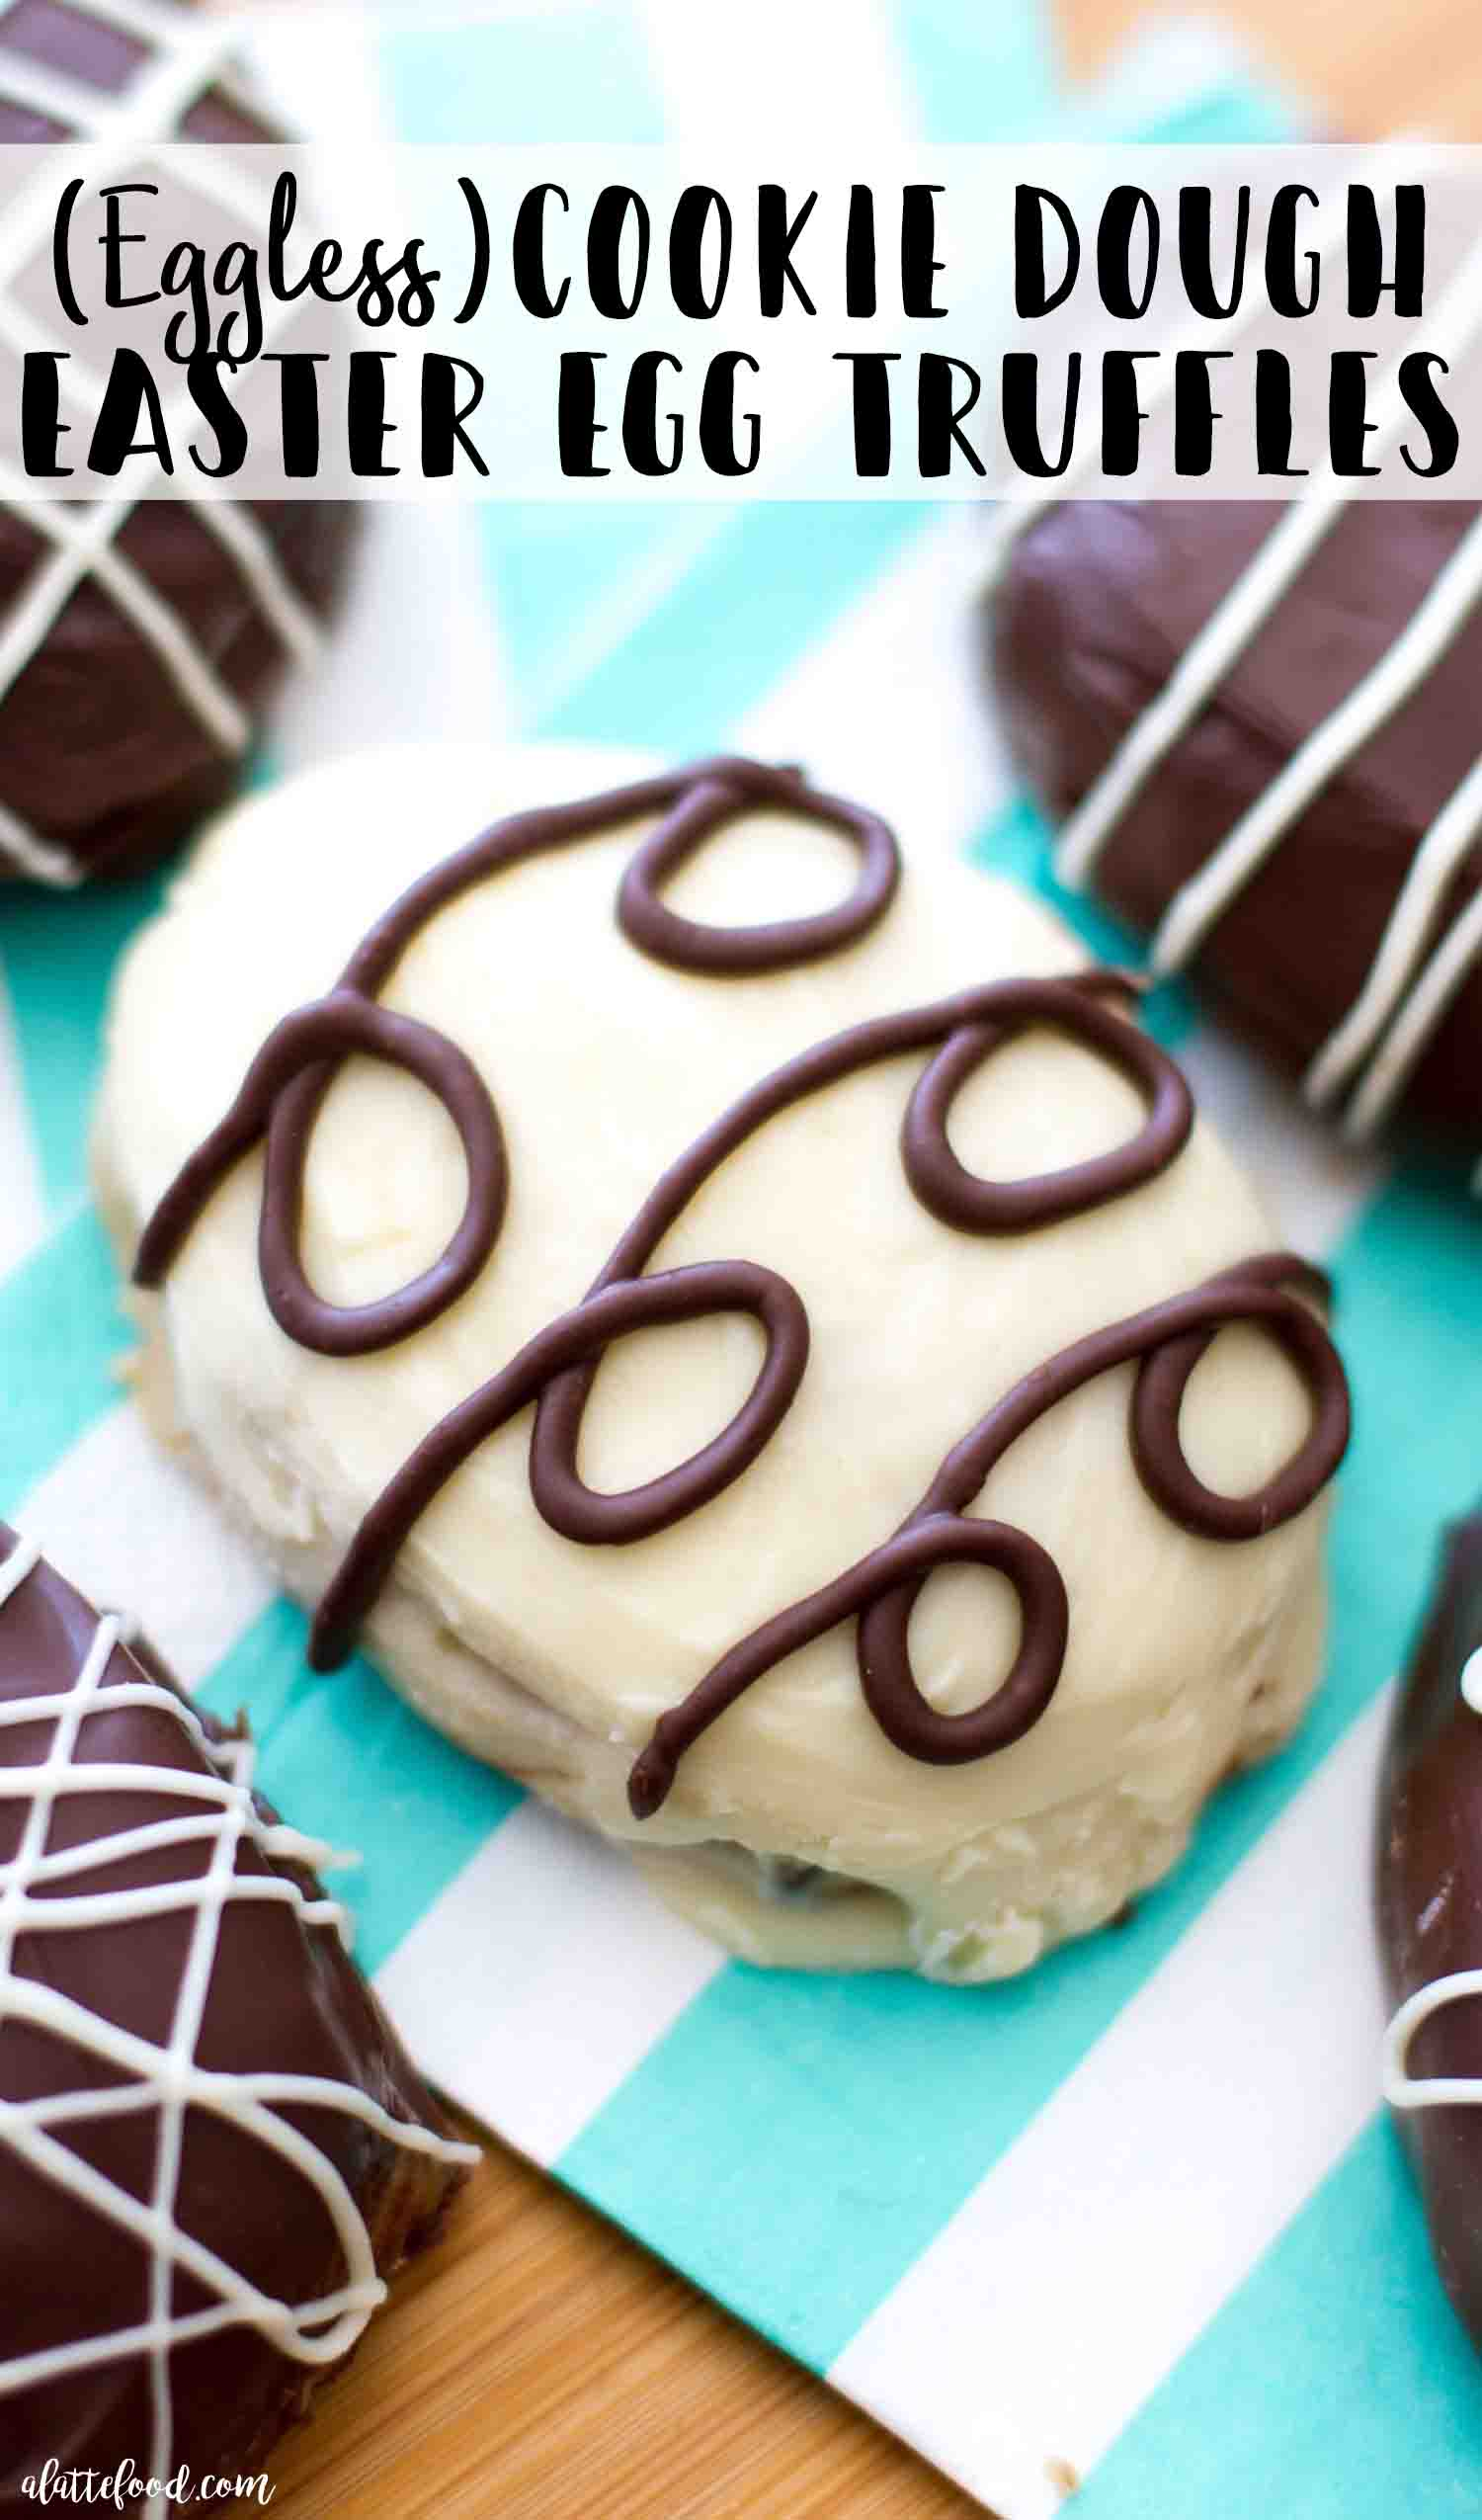 These eggless cookie dough easter egg truffles are made with cream cheese and dipped in chocolate